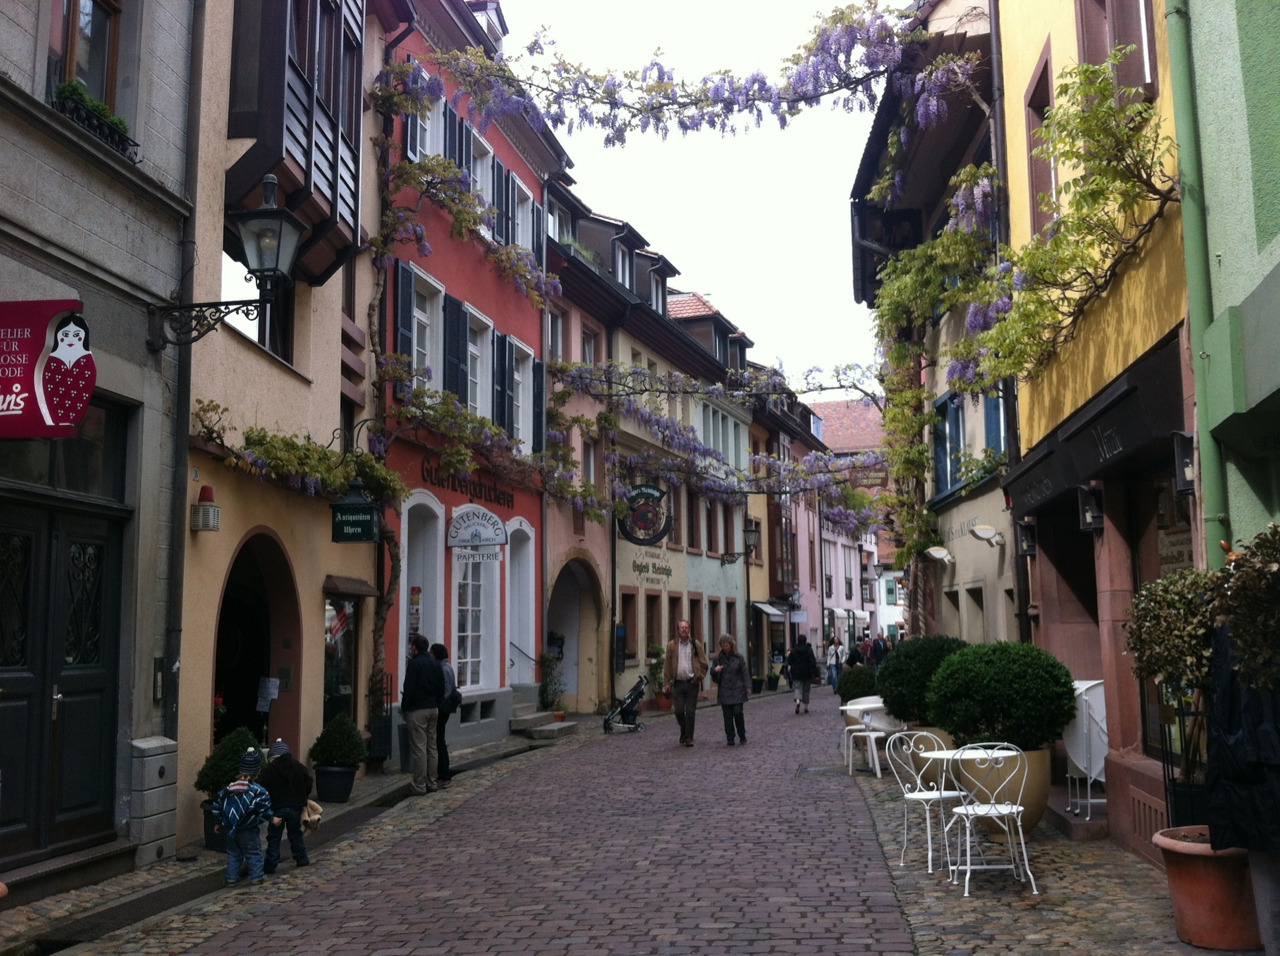 This is one of the more photogenic streets in Freiburg and it is intriguingly named Konviktstraße.  Taken with Click! App, not processed at all.